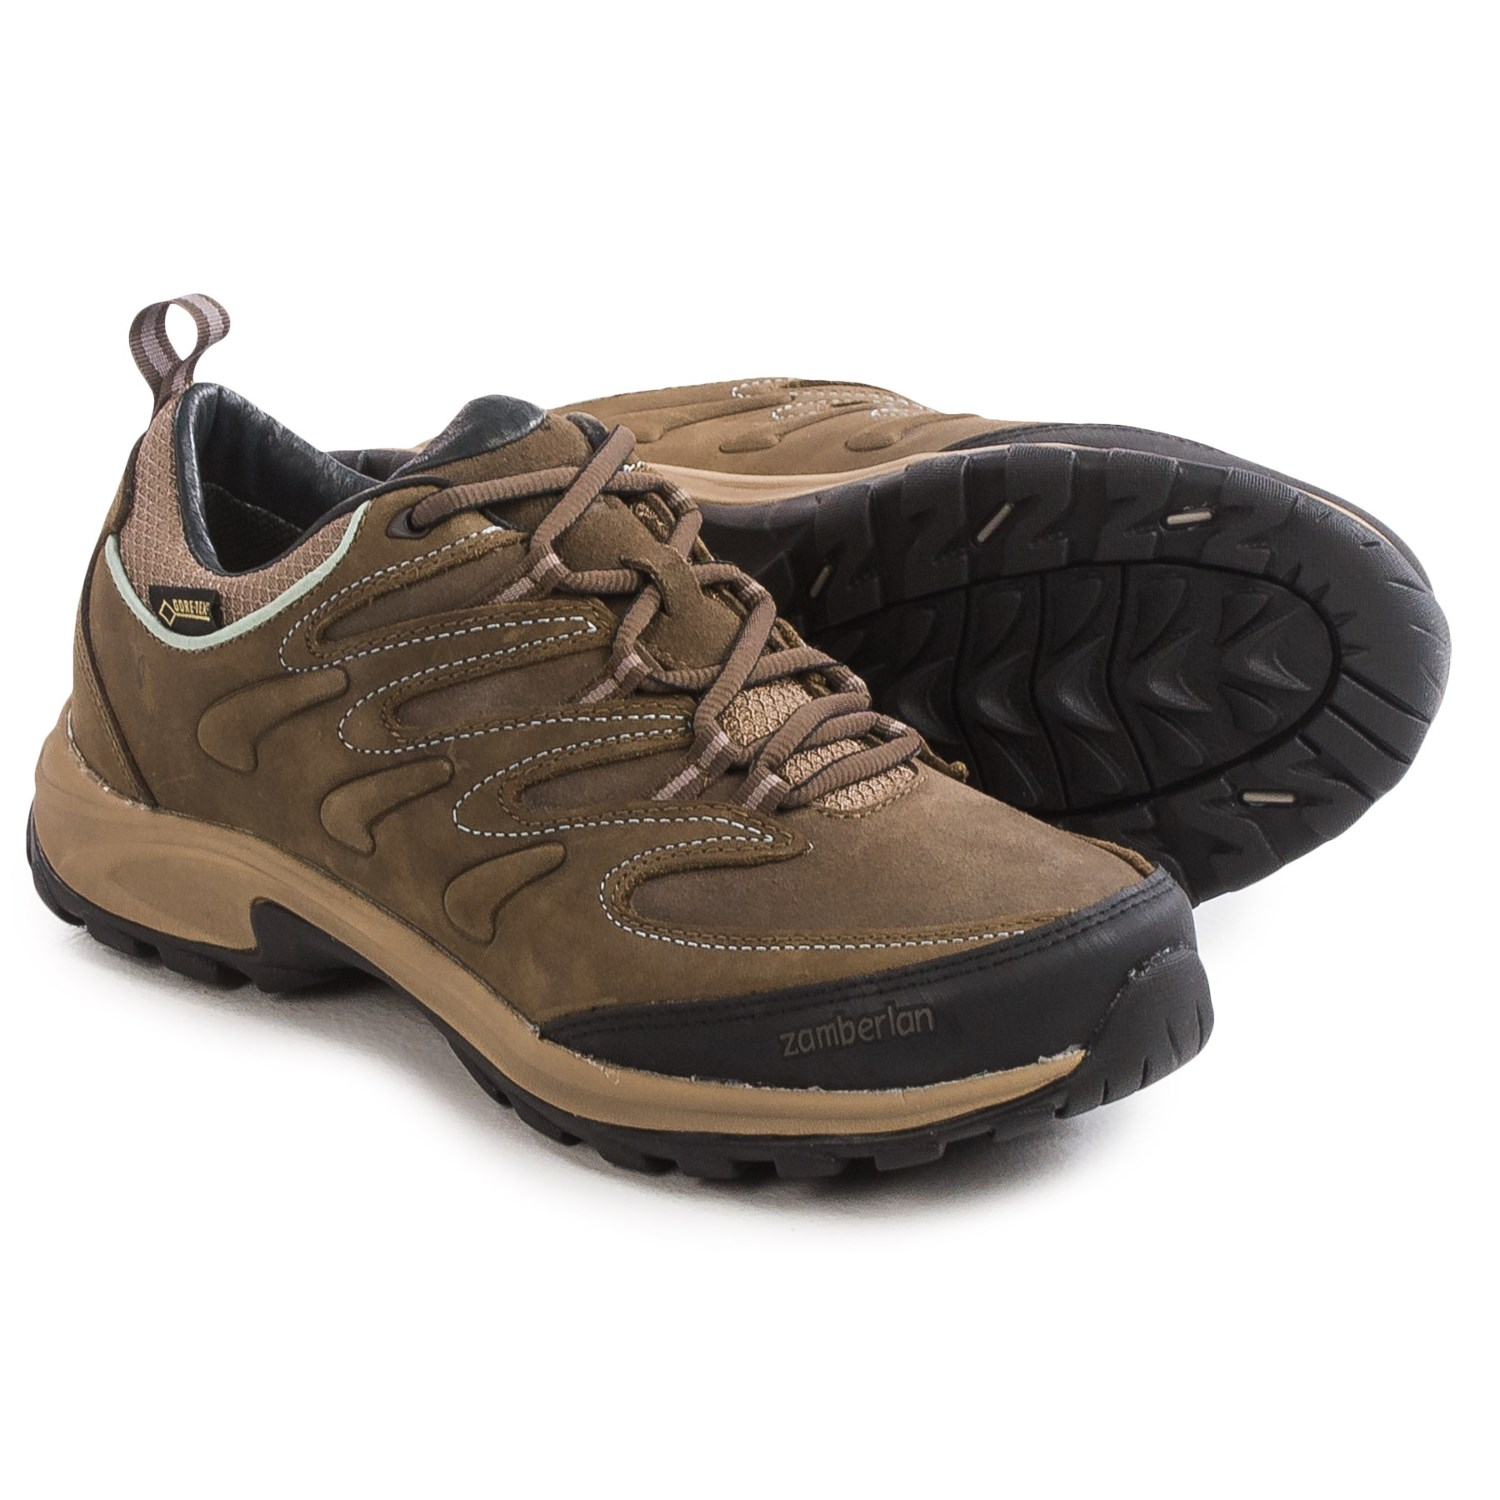 Zamberlan Cairn Gore Tex 174 Rr Hiking Shoes For Women